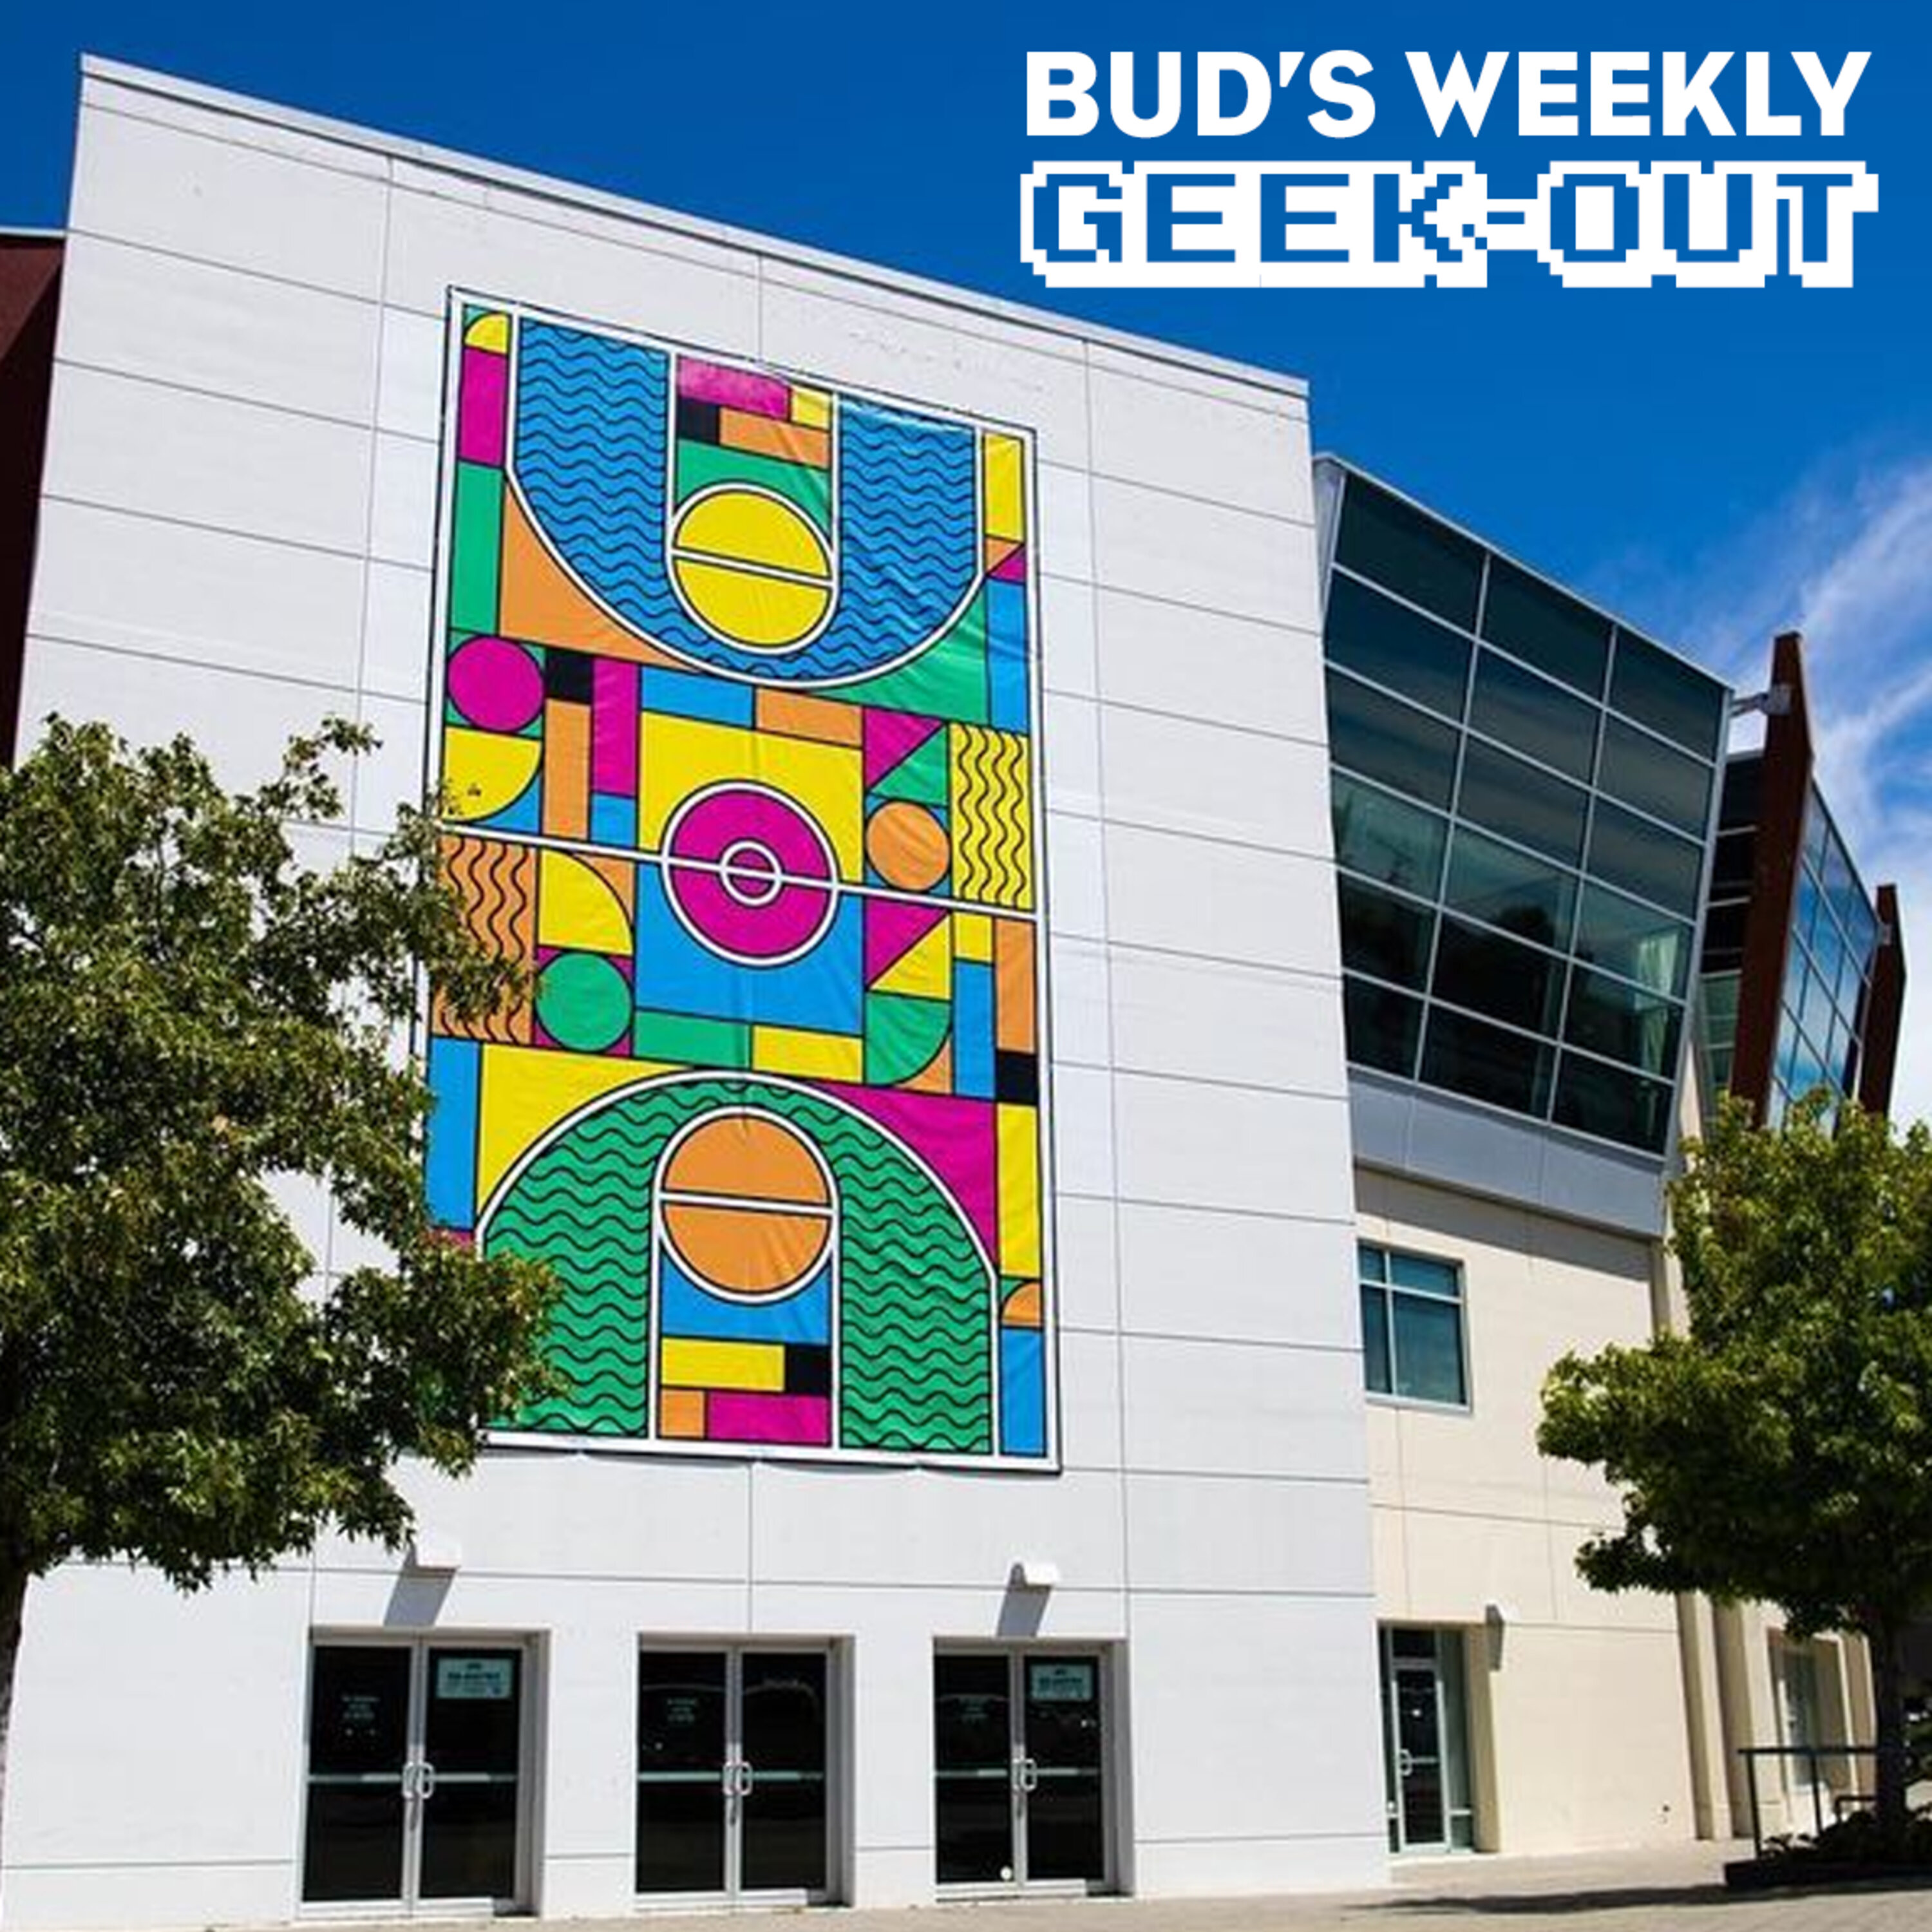 Bud's Weekly Geek-out! 20210714 - Outside the Lines AR mural